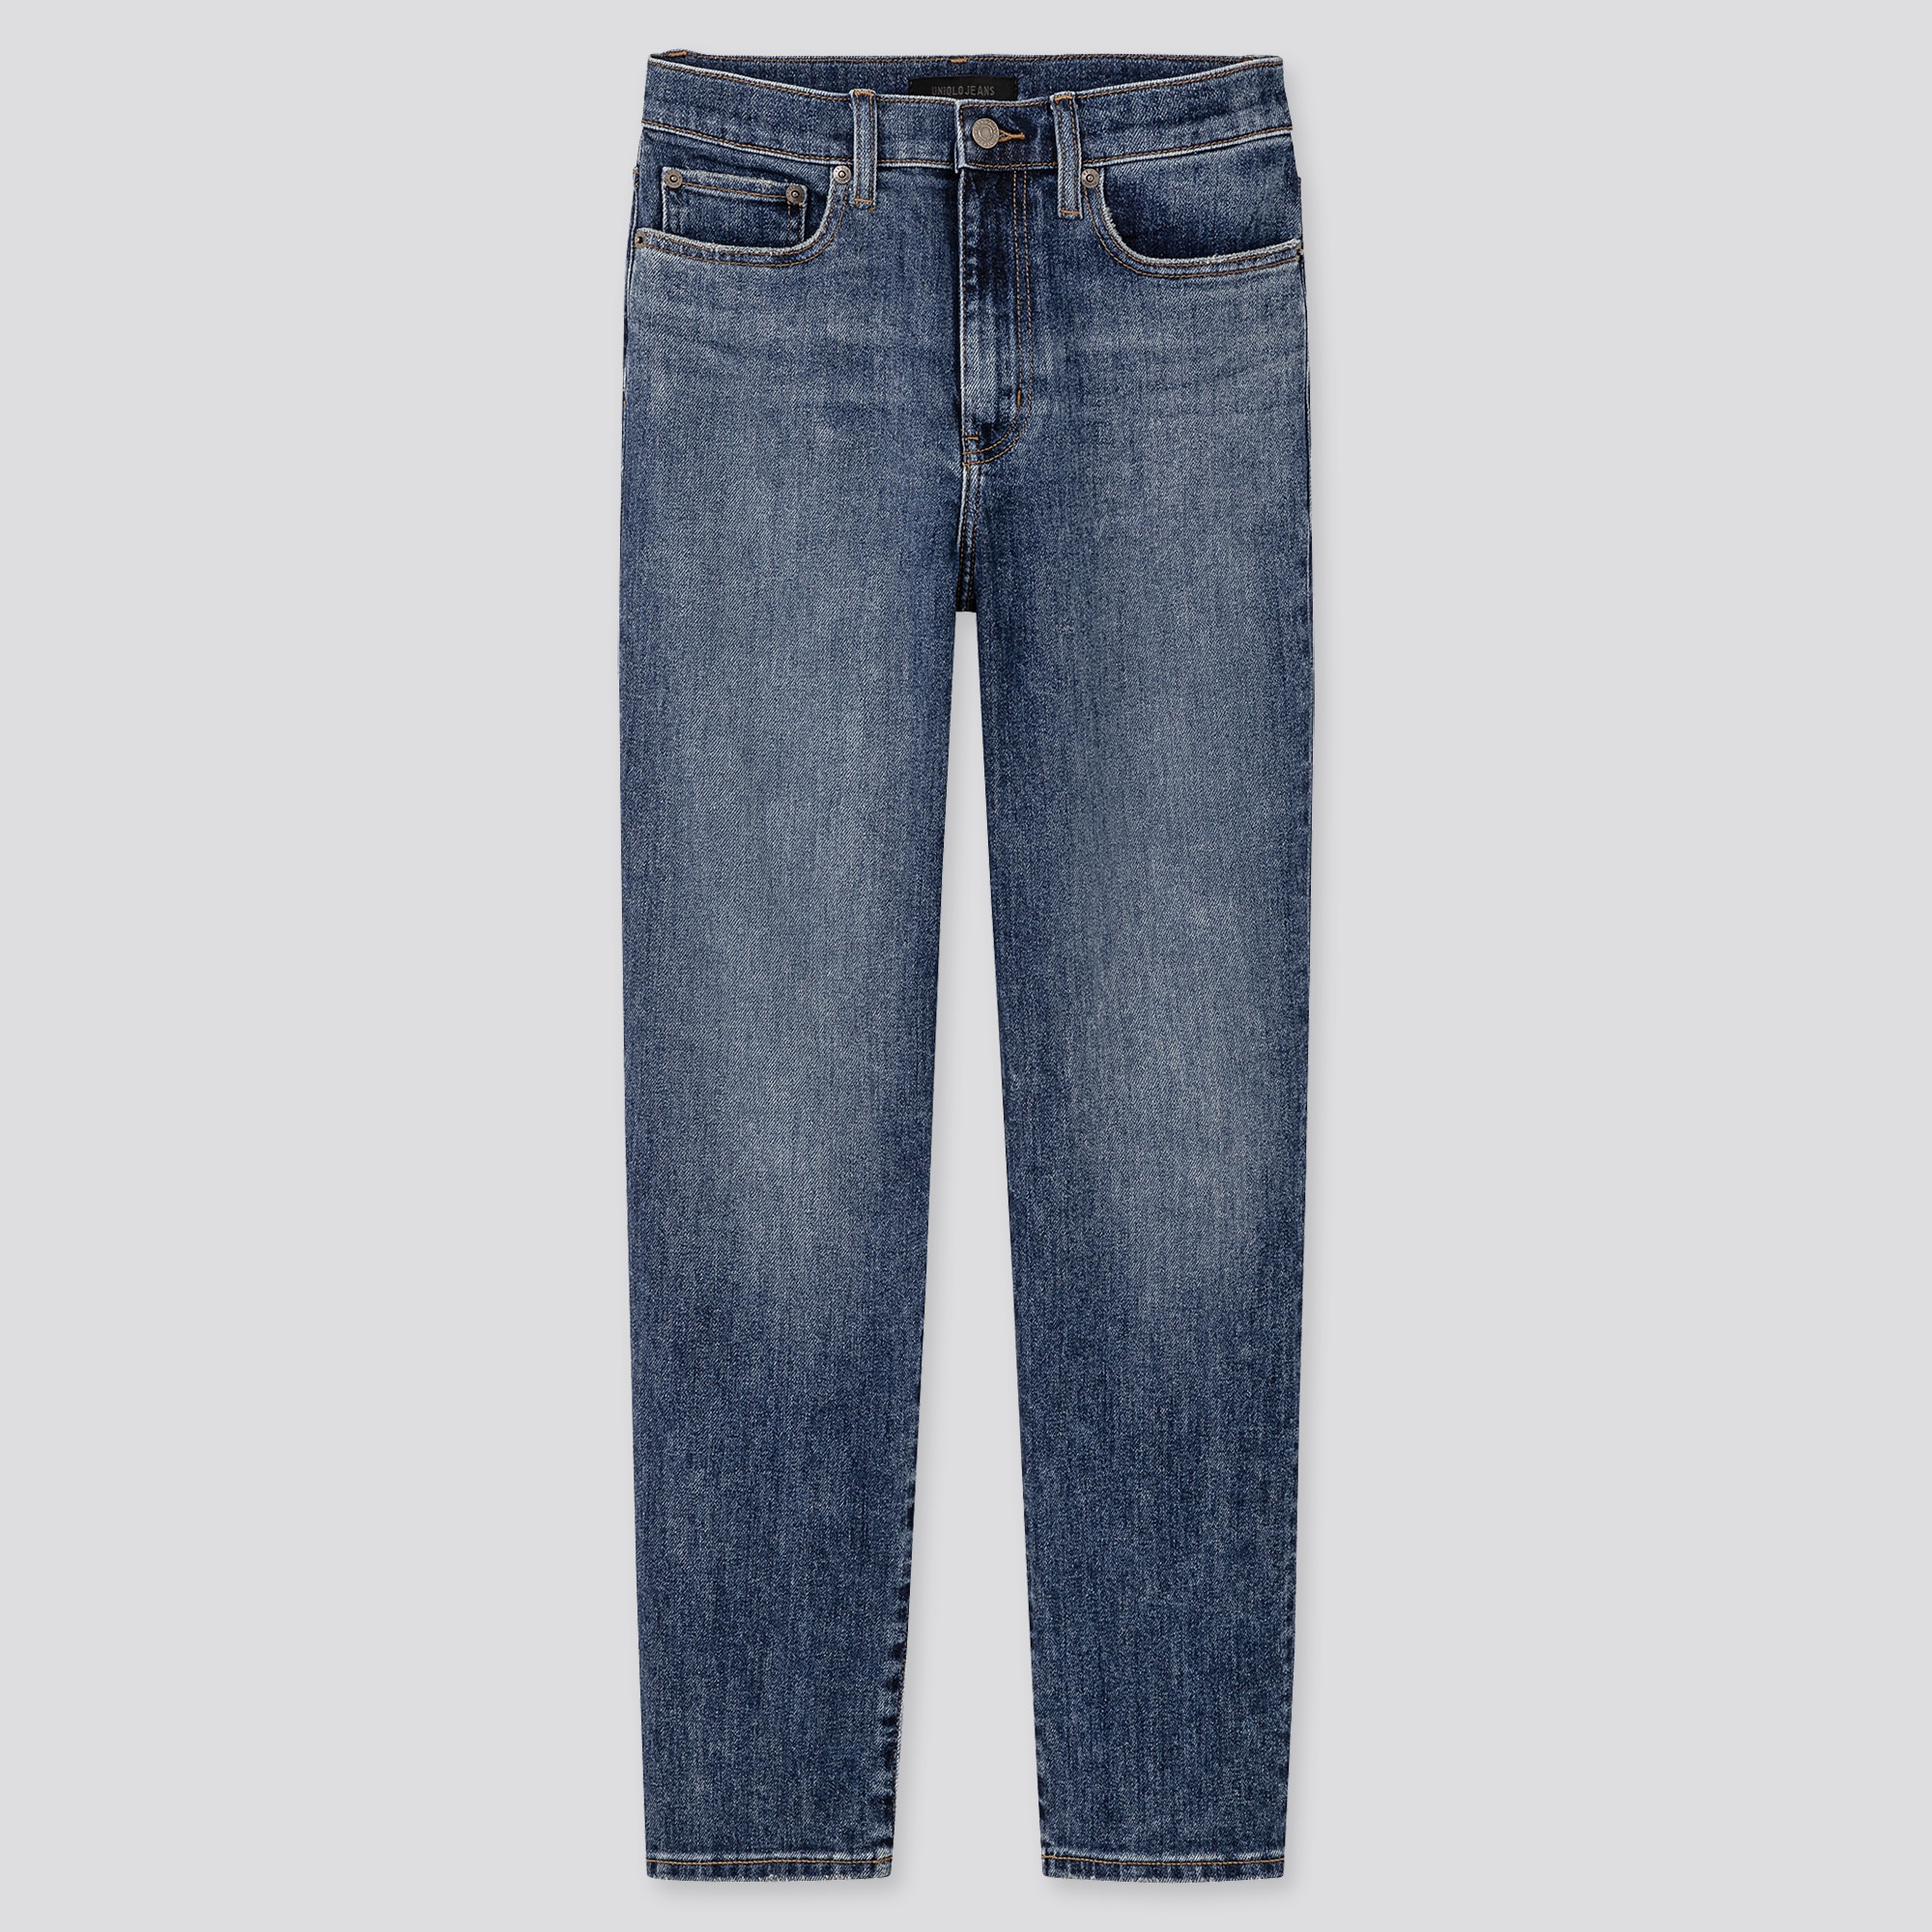 WOMEN HIGH-RISE STRAIGHT JEANS